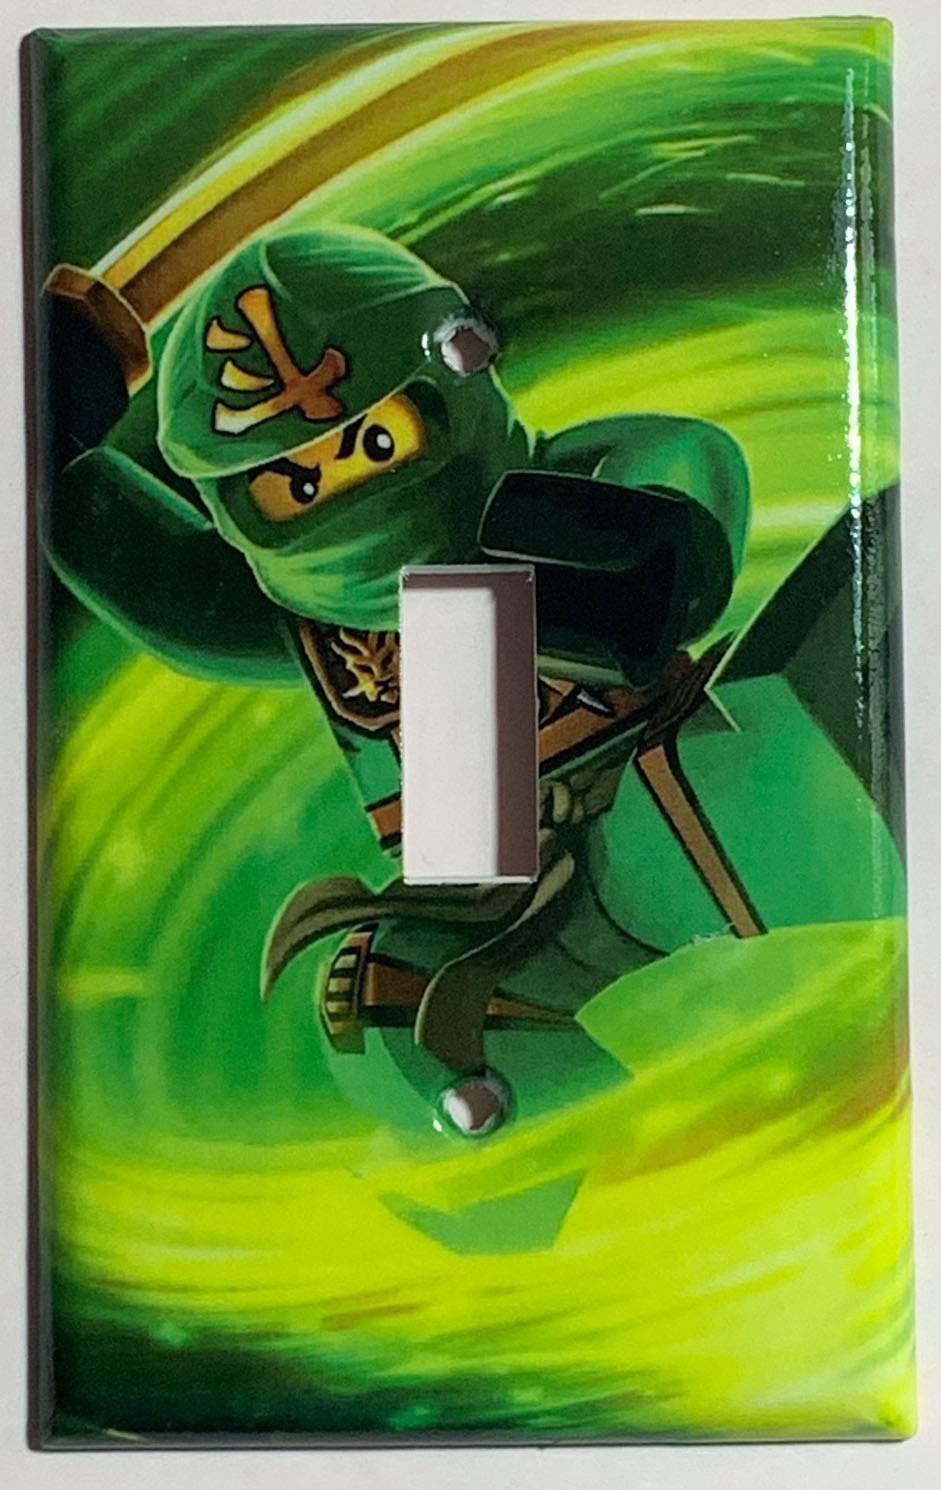 Ninjago LLOYD green Light Switch Outlet duplex wall Cover Plate Home Decor